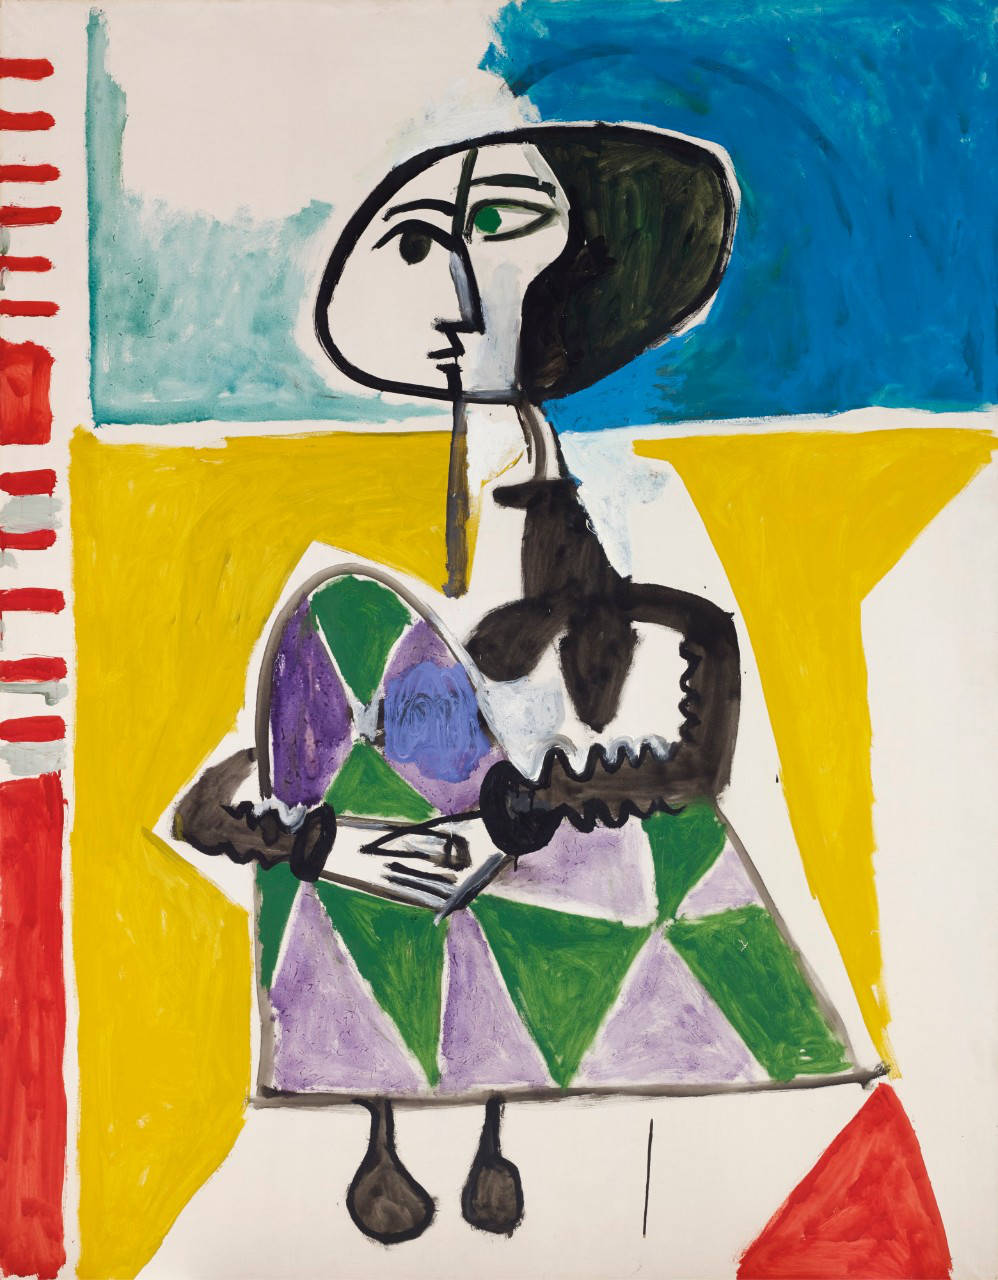 Pablo Picasso, FEMME ACCROUPIE. Dated 8.10.54.II on the reverse. Oil on canvas 146 by 113.5cm. 57 1/2 by 44 3/4 in. Painted on 8th October 1954.